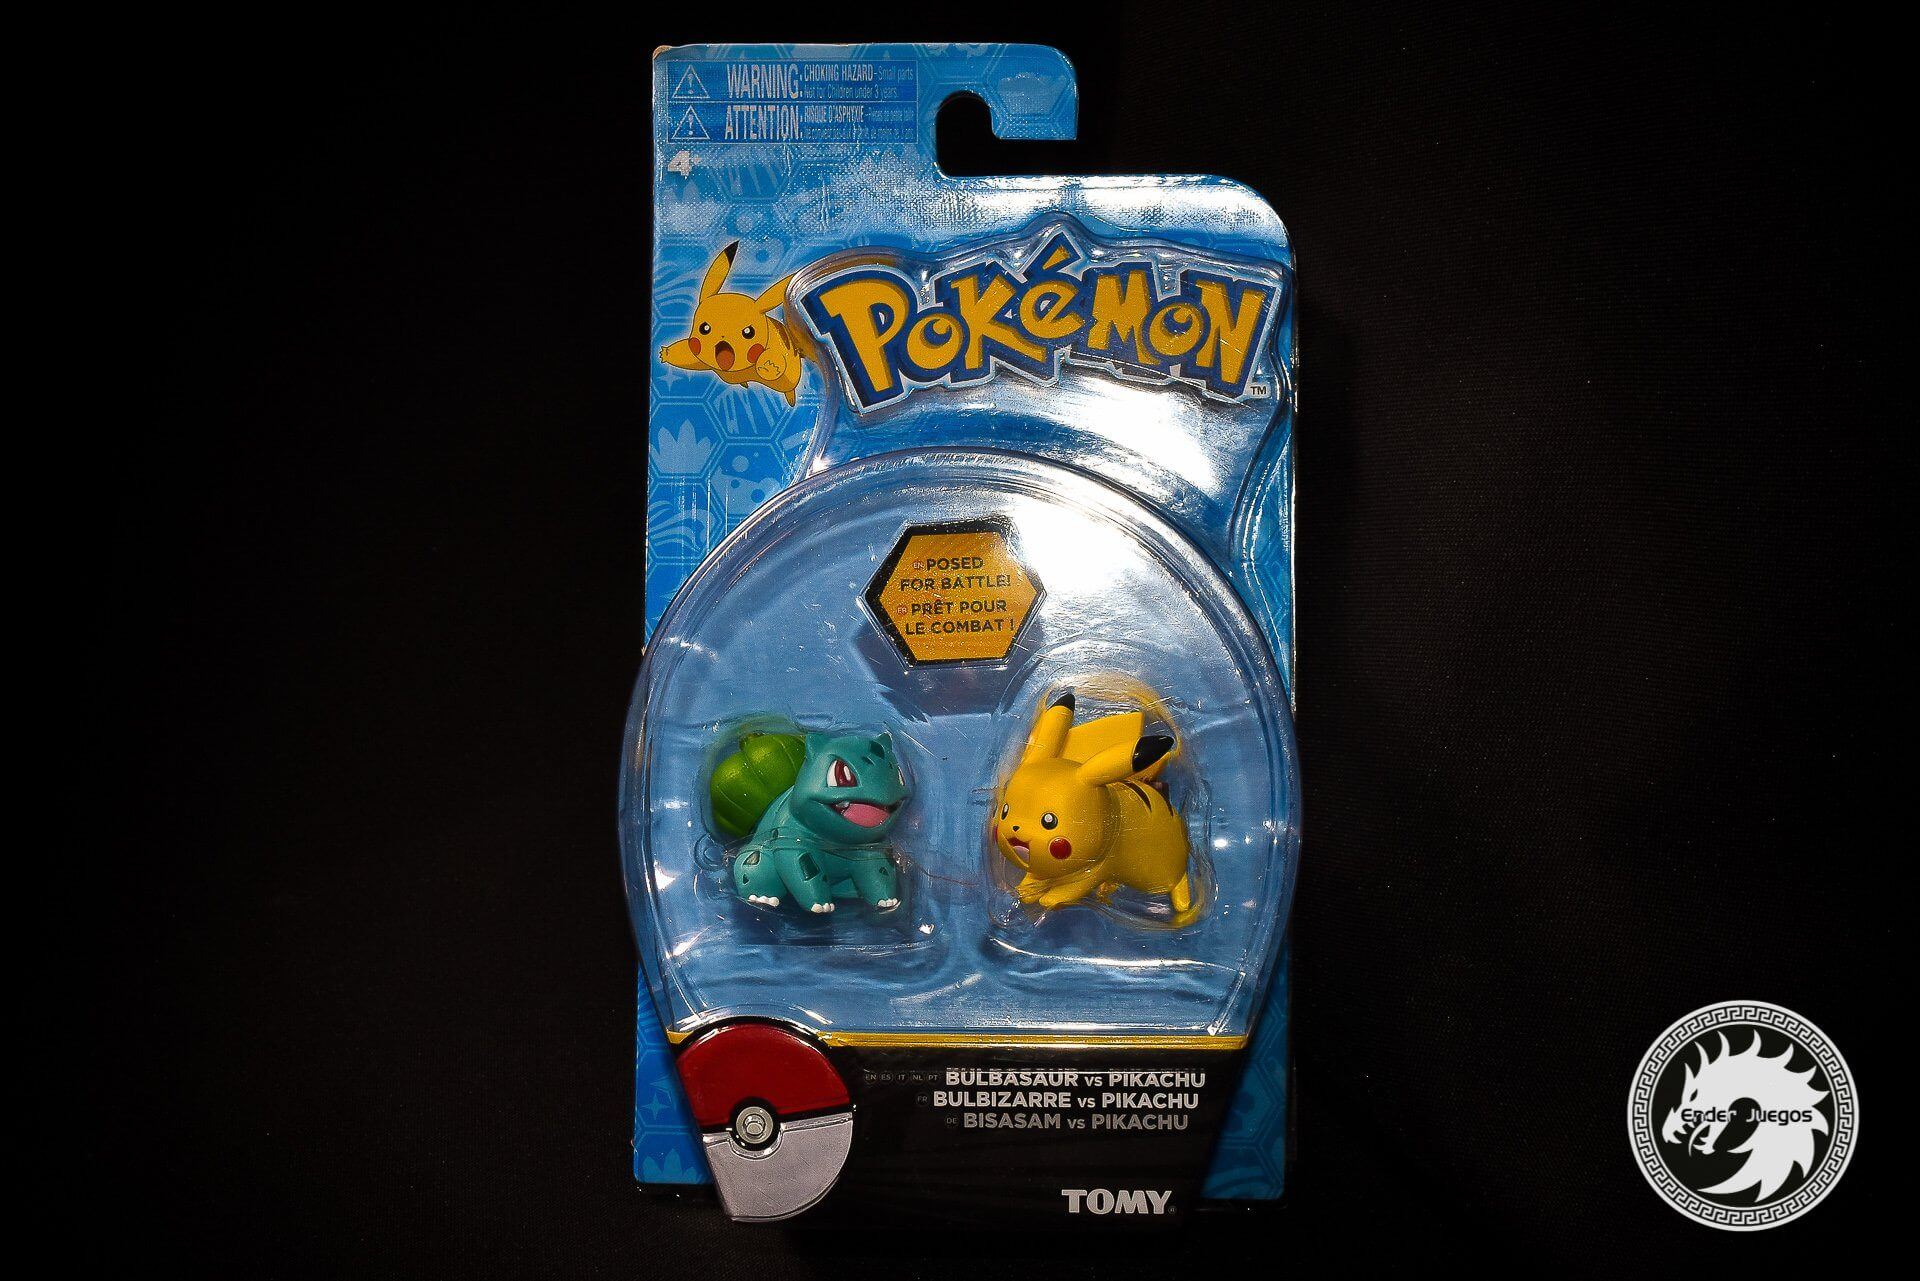 Pokemon Action Pose (2 figuras) - Bulbasaur vs Pikachu - Tomy